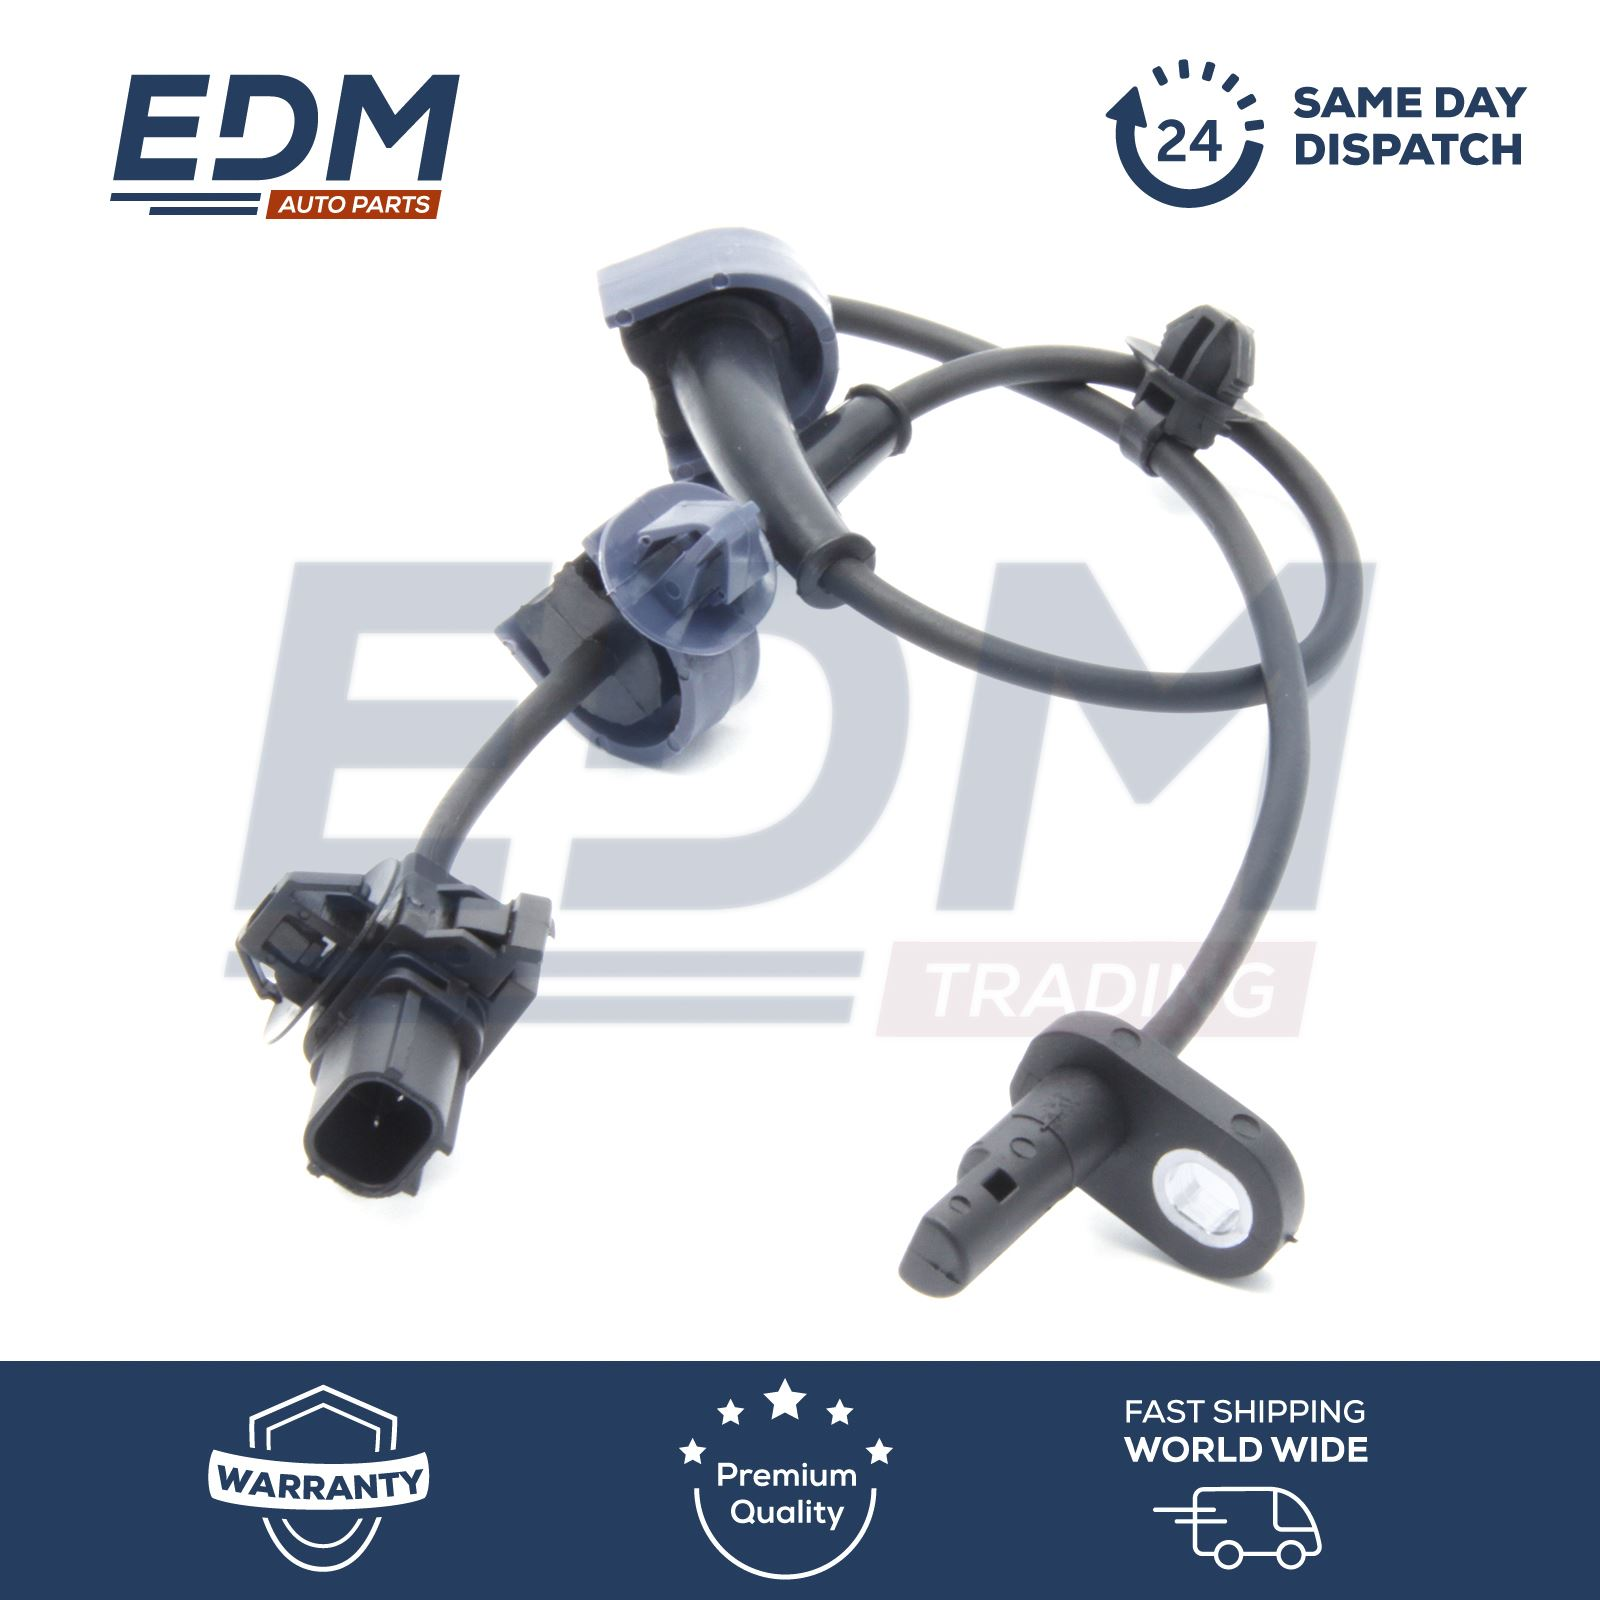 Rear Left ABS Wheel Speed Sensor Fit HONDA Civic MK8 2006-2012 57475-SMG-E01